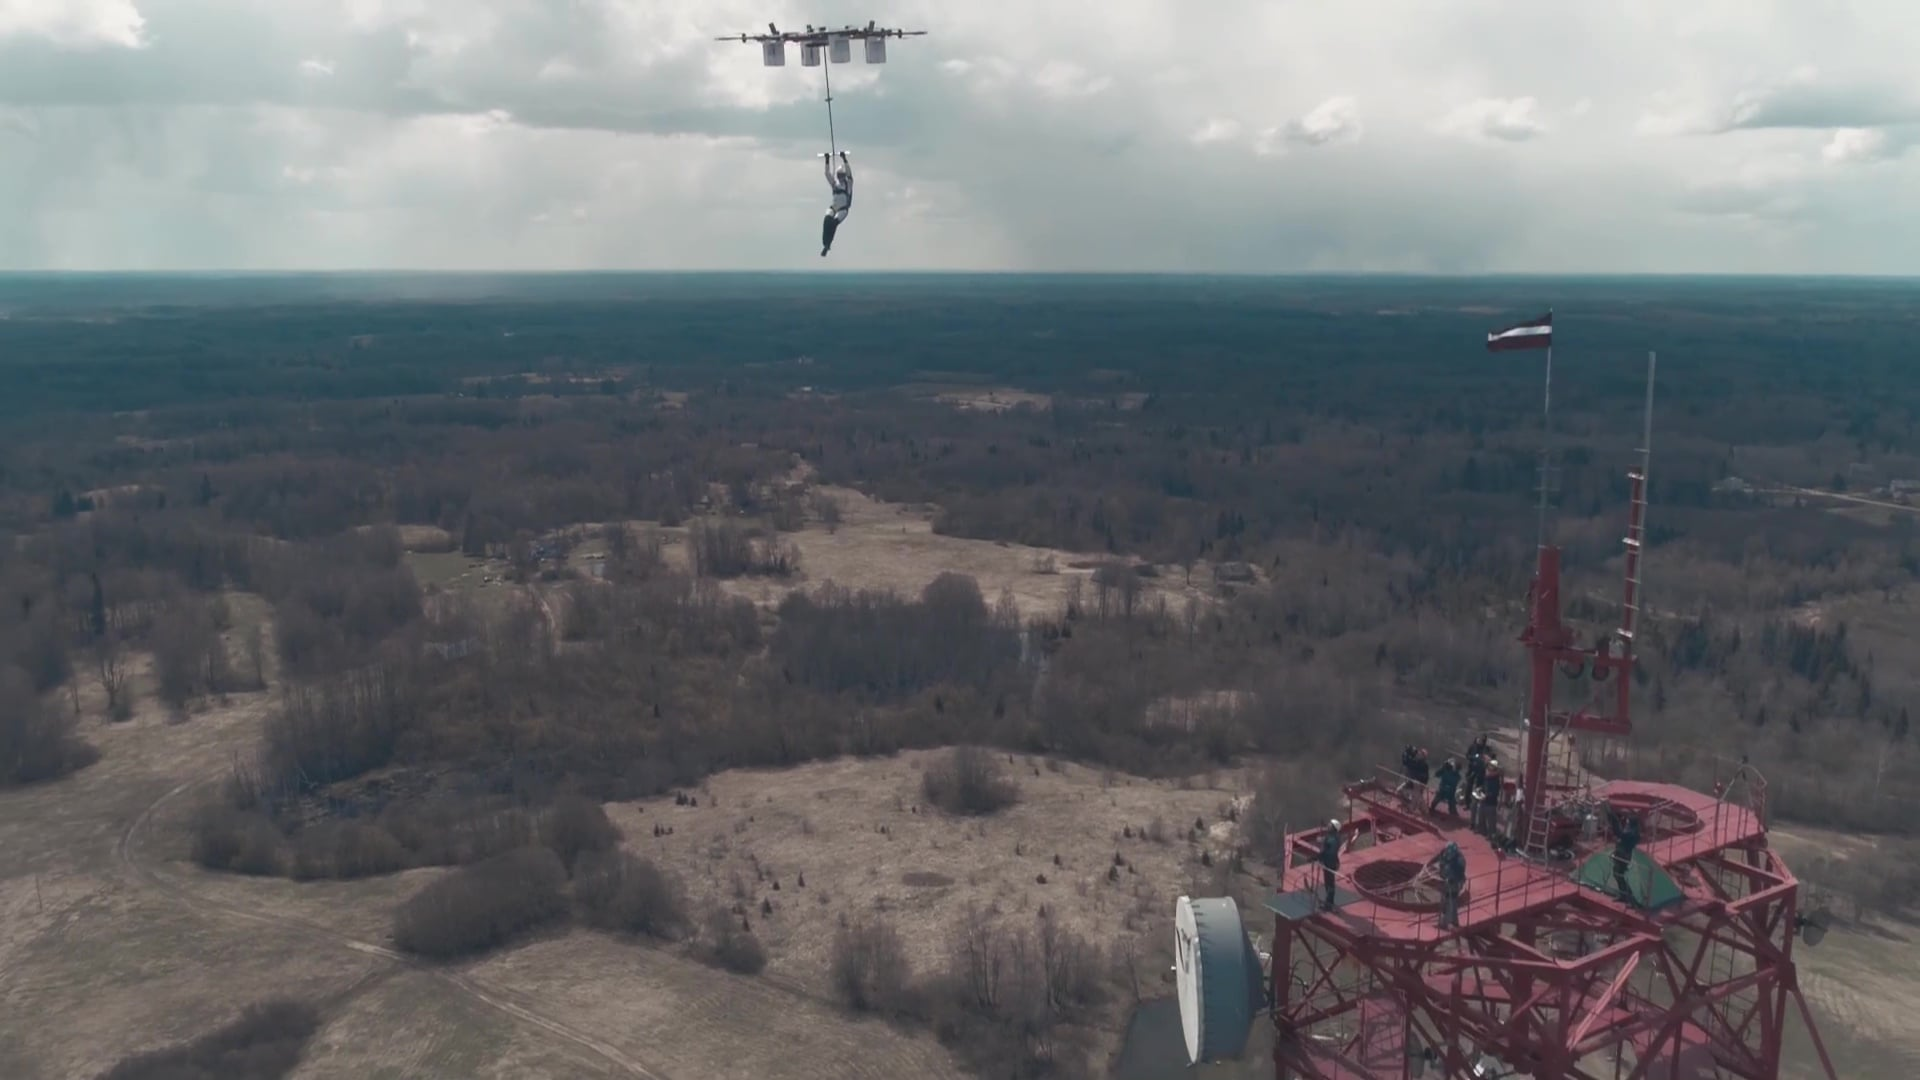 Drone Skydiving 01